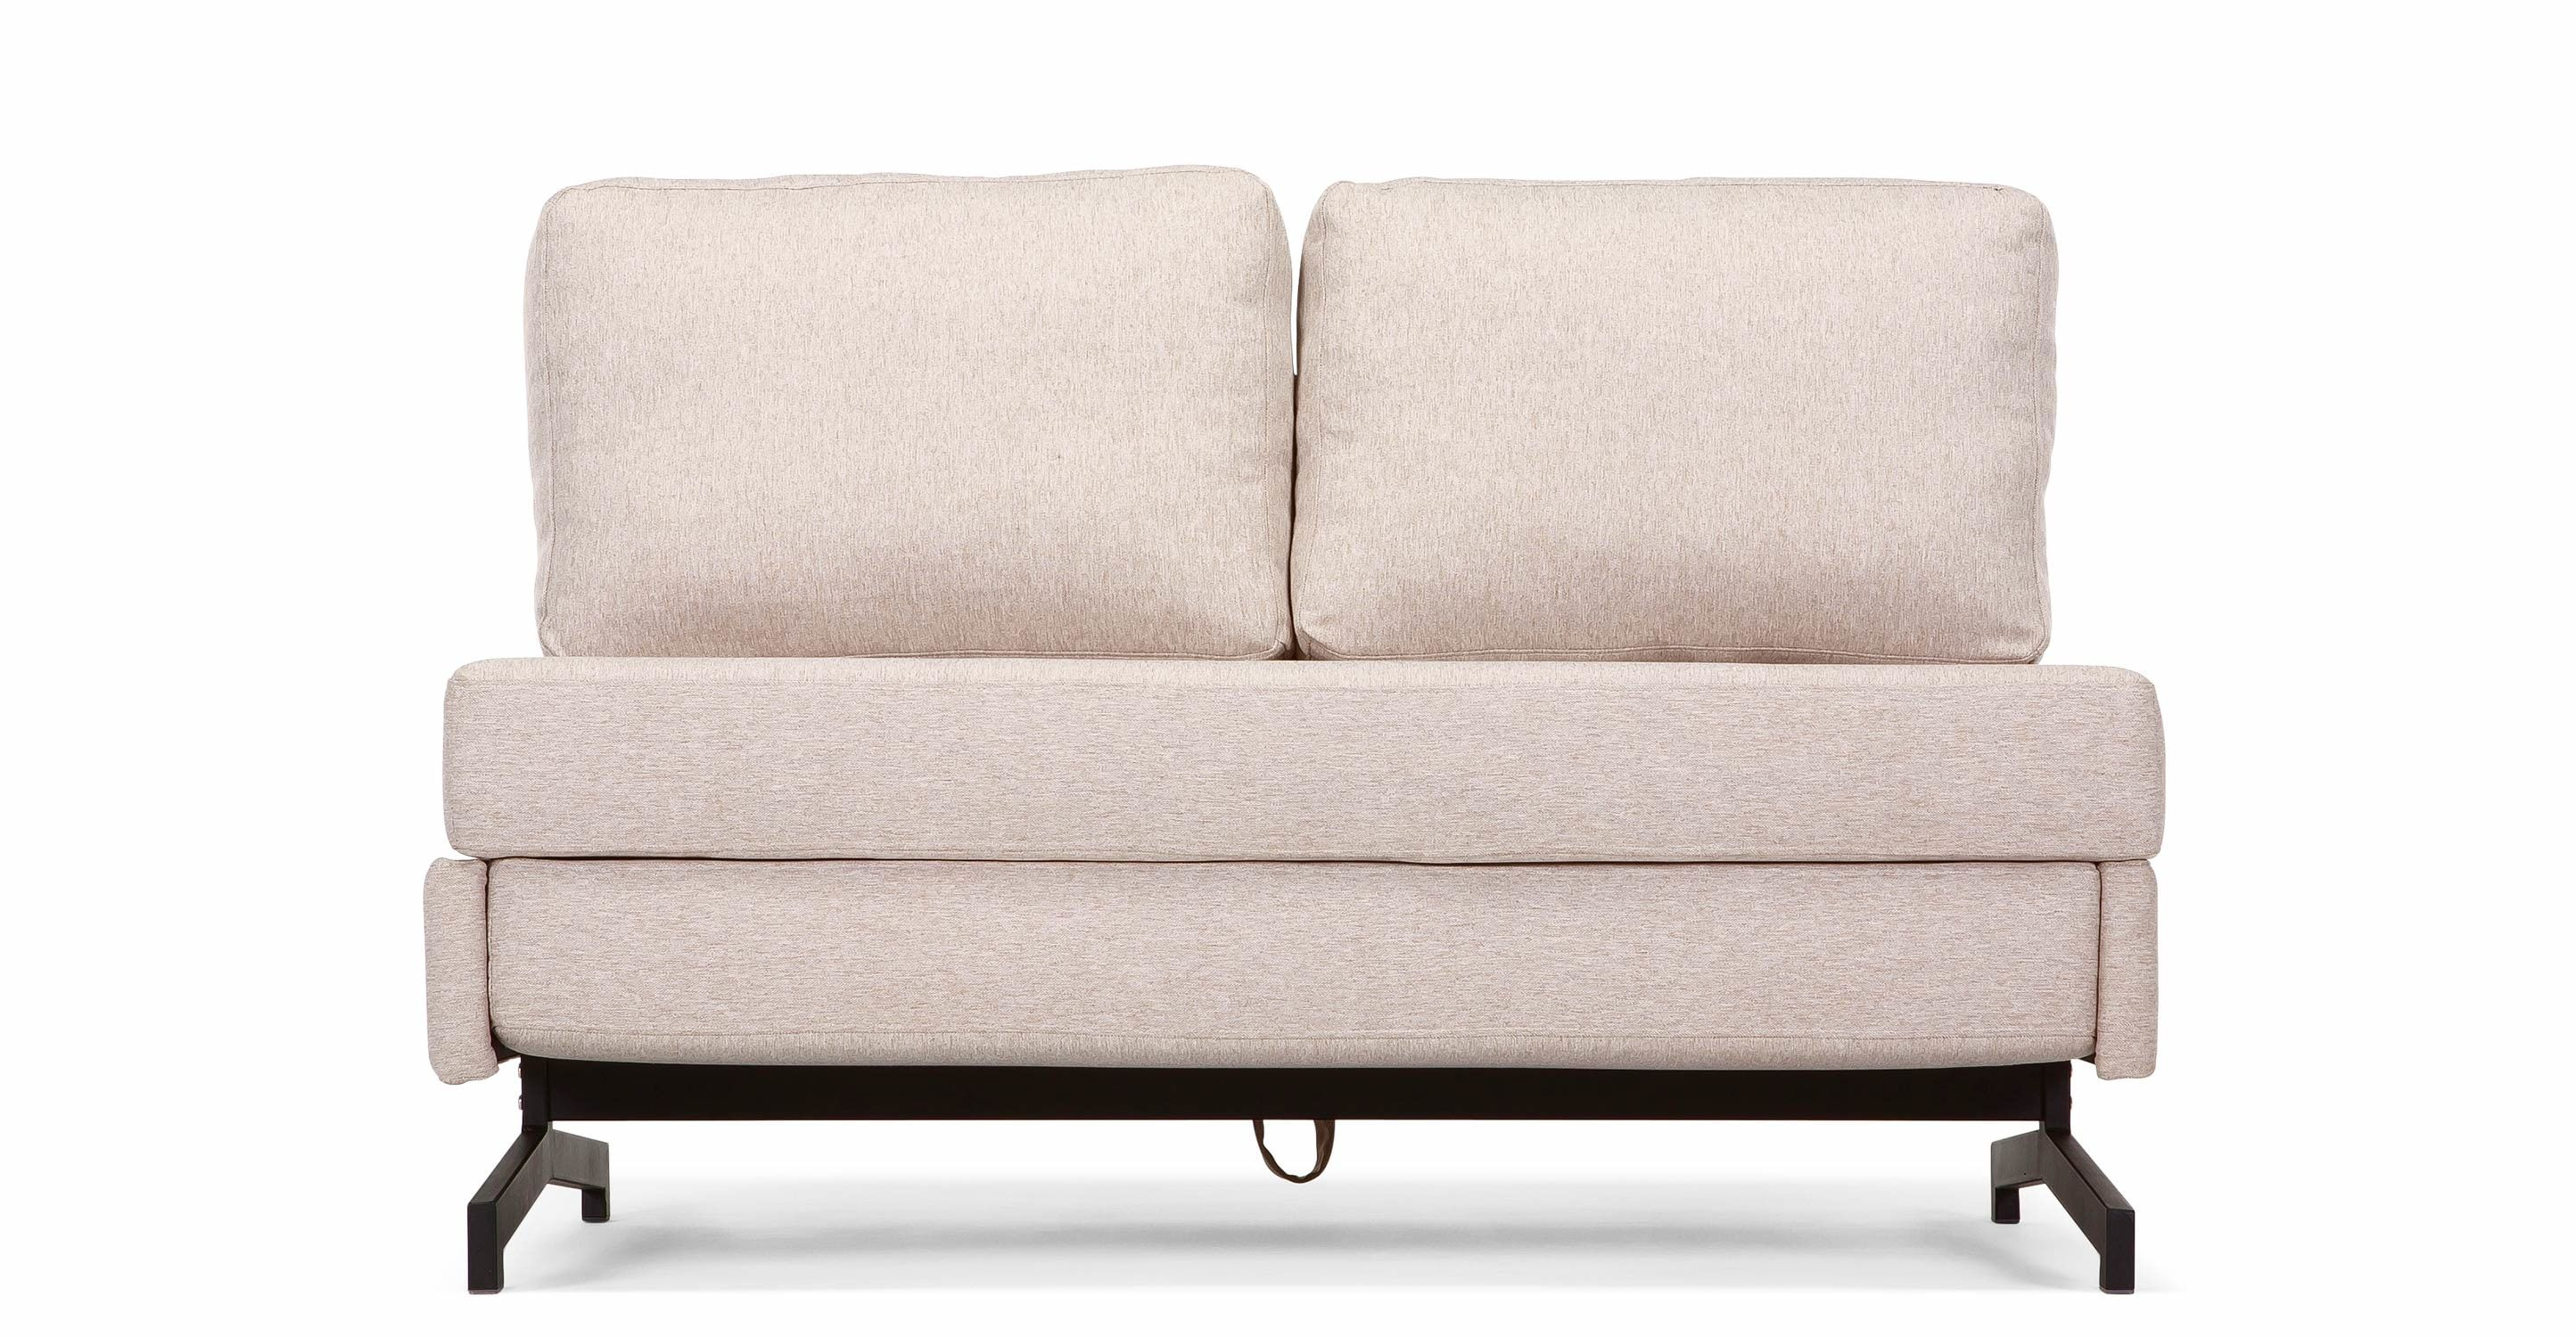 Motti Armless Sofa Bed, Pipit Beige Sofa bed uk, Modern